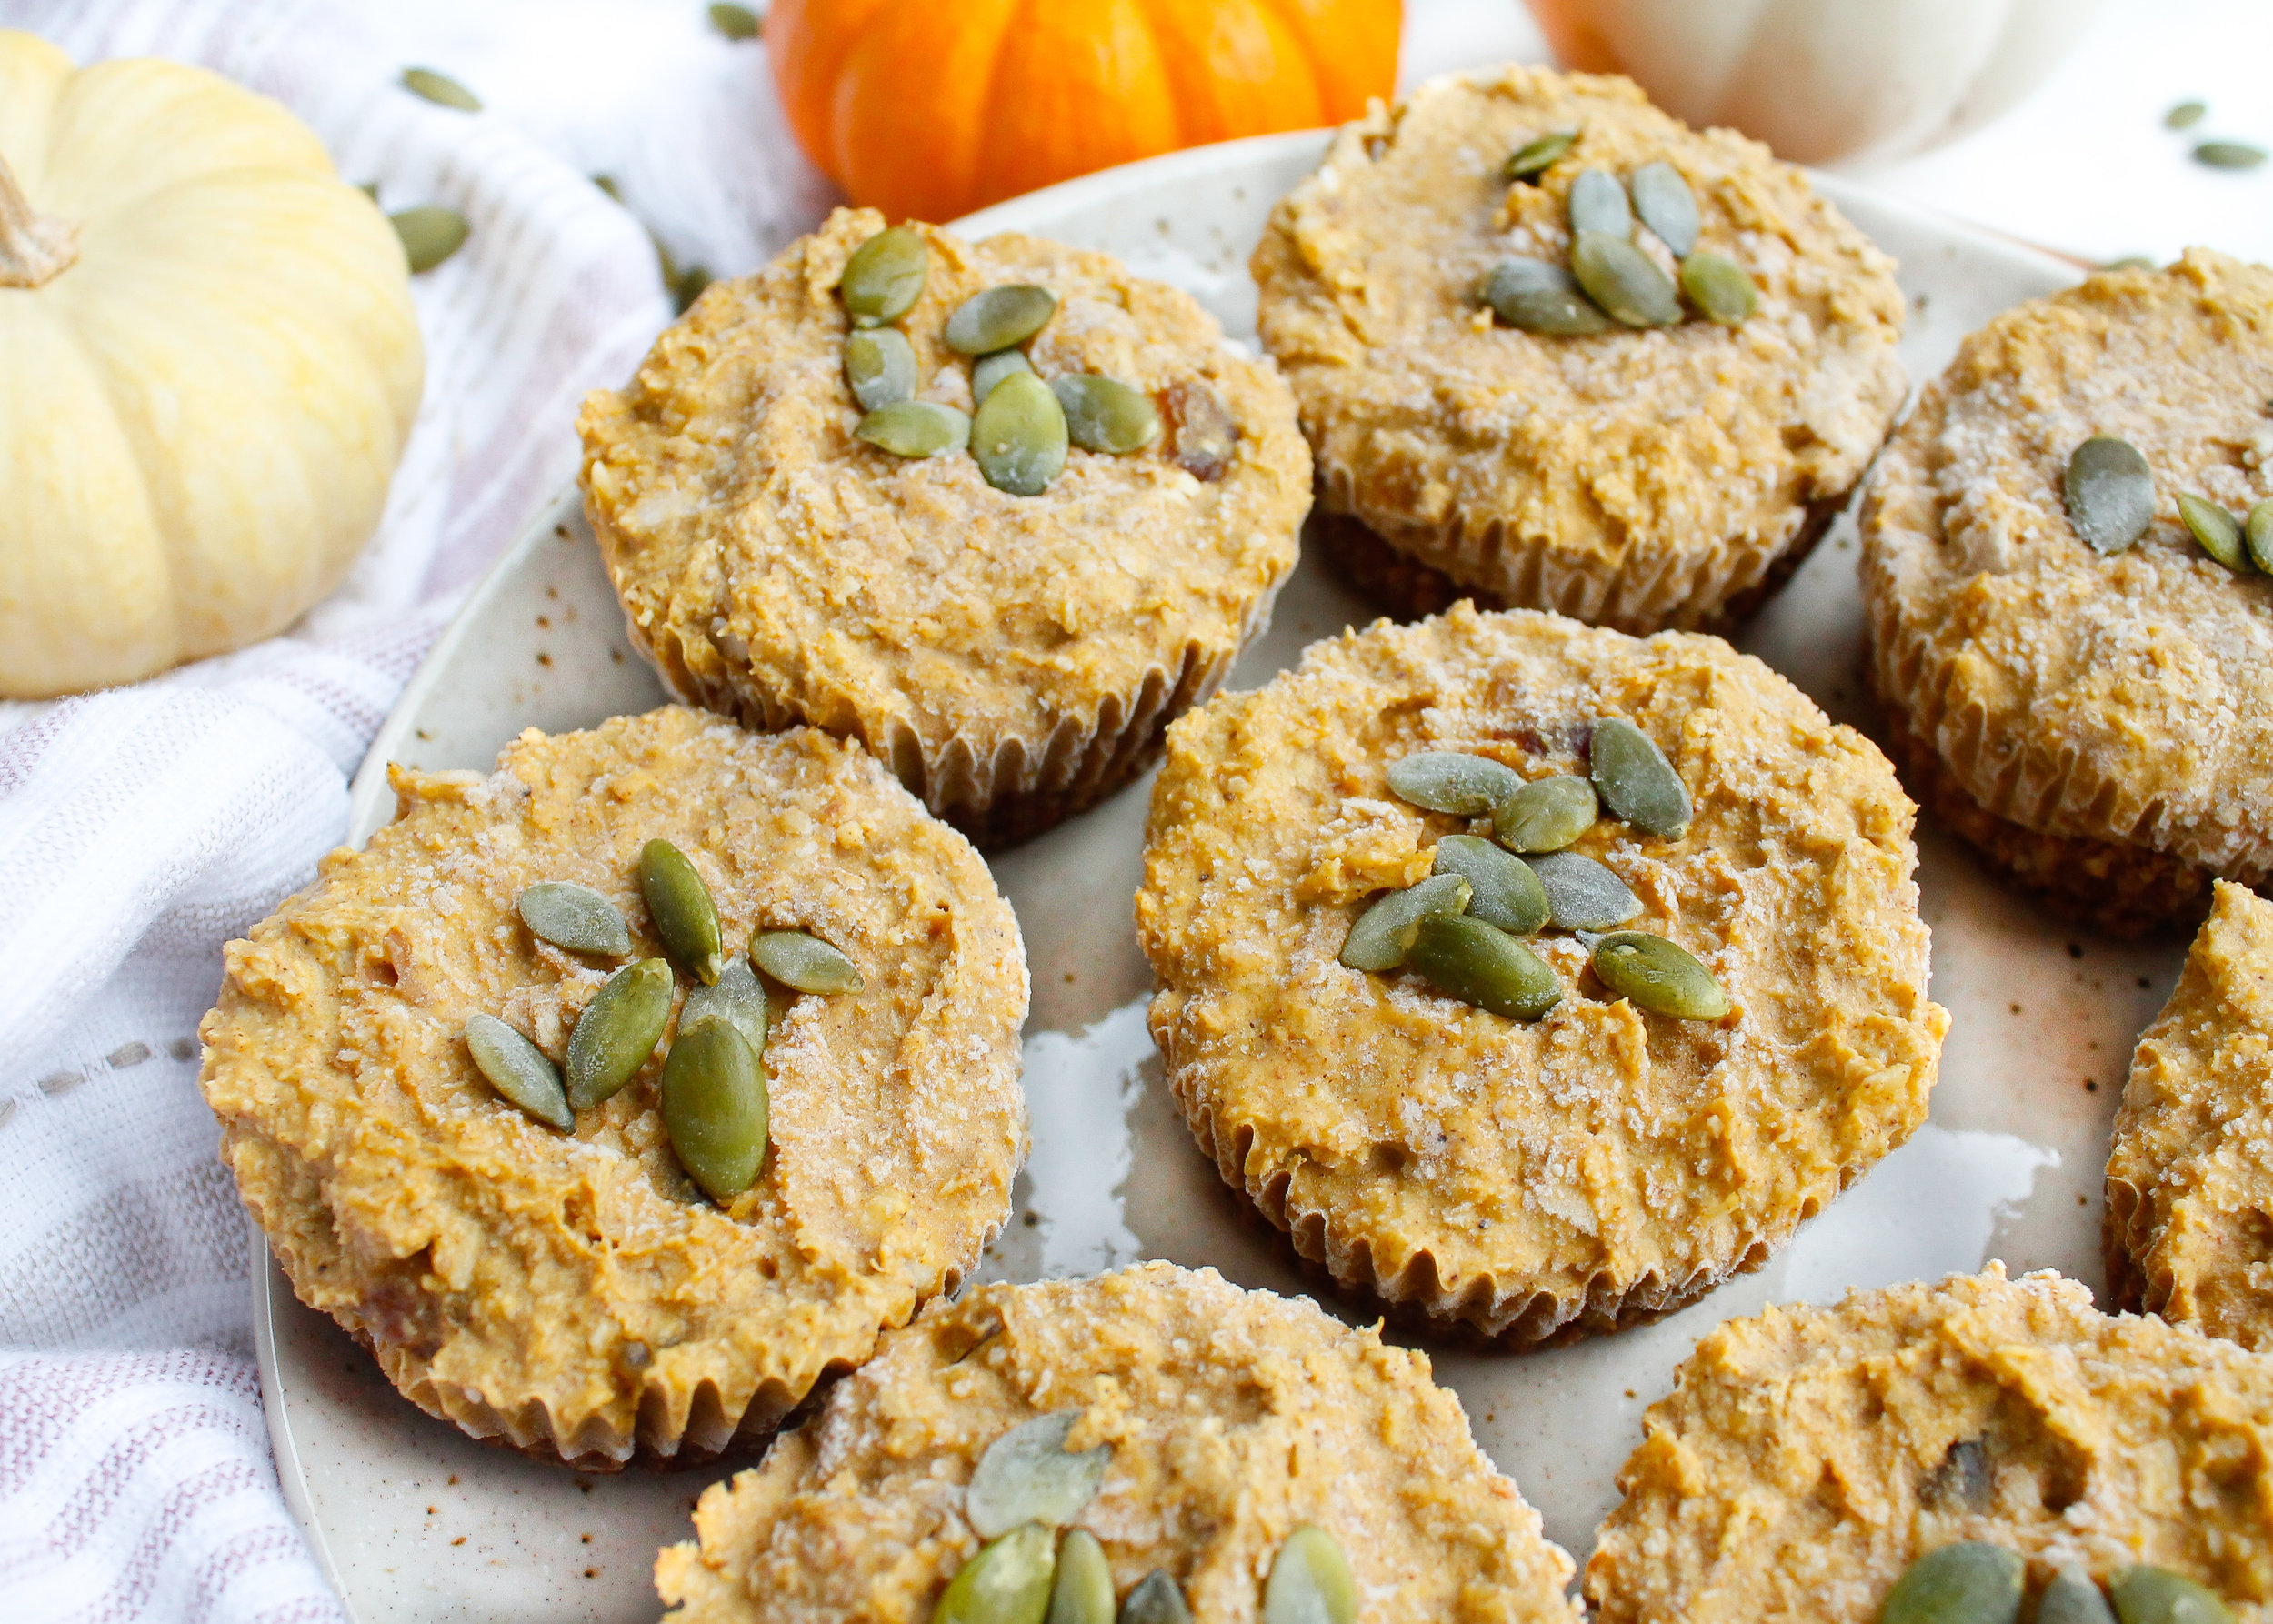 These paleo pumpkin cheesecake bites are the perfect way to say goodbye to pumpkin season! They're also vegan if you sub the honey for maple syrup and they're refined sugar free, grain free, gluten and dairy free and specific carbohydrate diet friendly! They're the perfect healthy, allergy-free holiday dessert. Click through for the recipe! #paleorecipes #dairyfreecheesecake #paleocheesecake